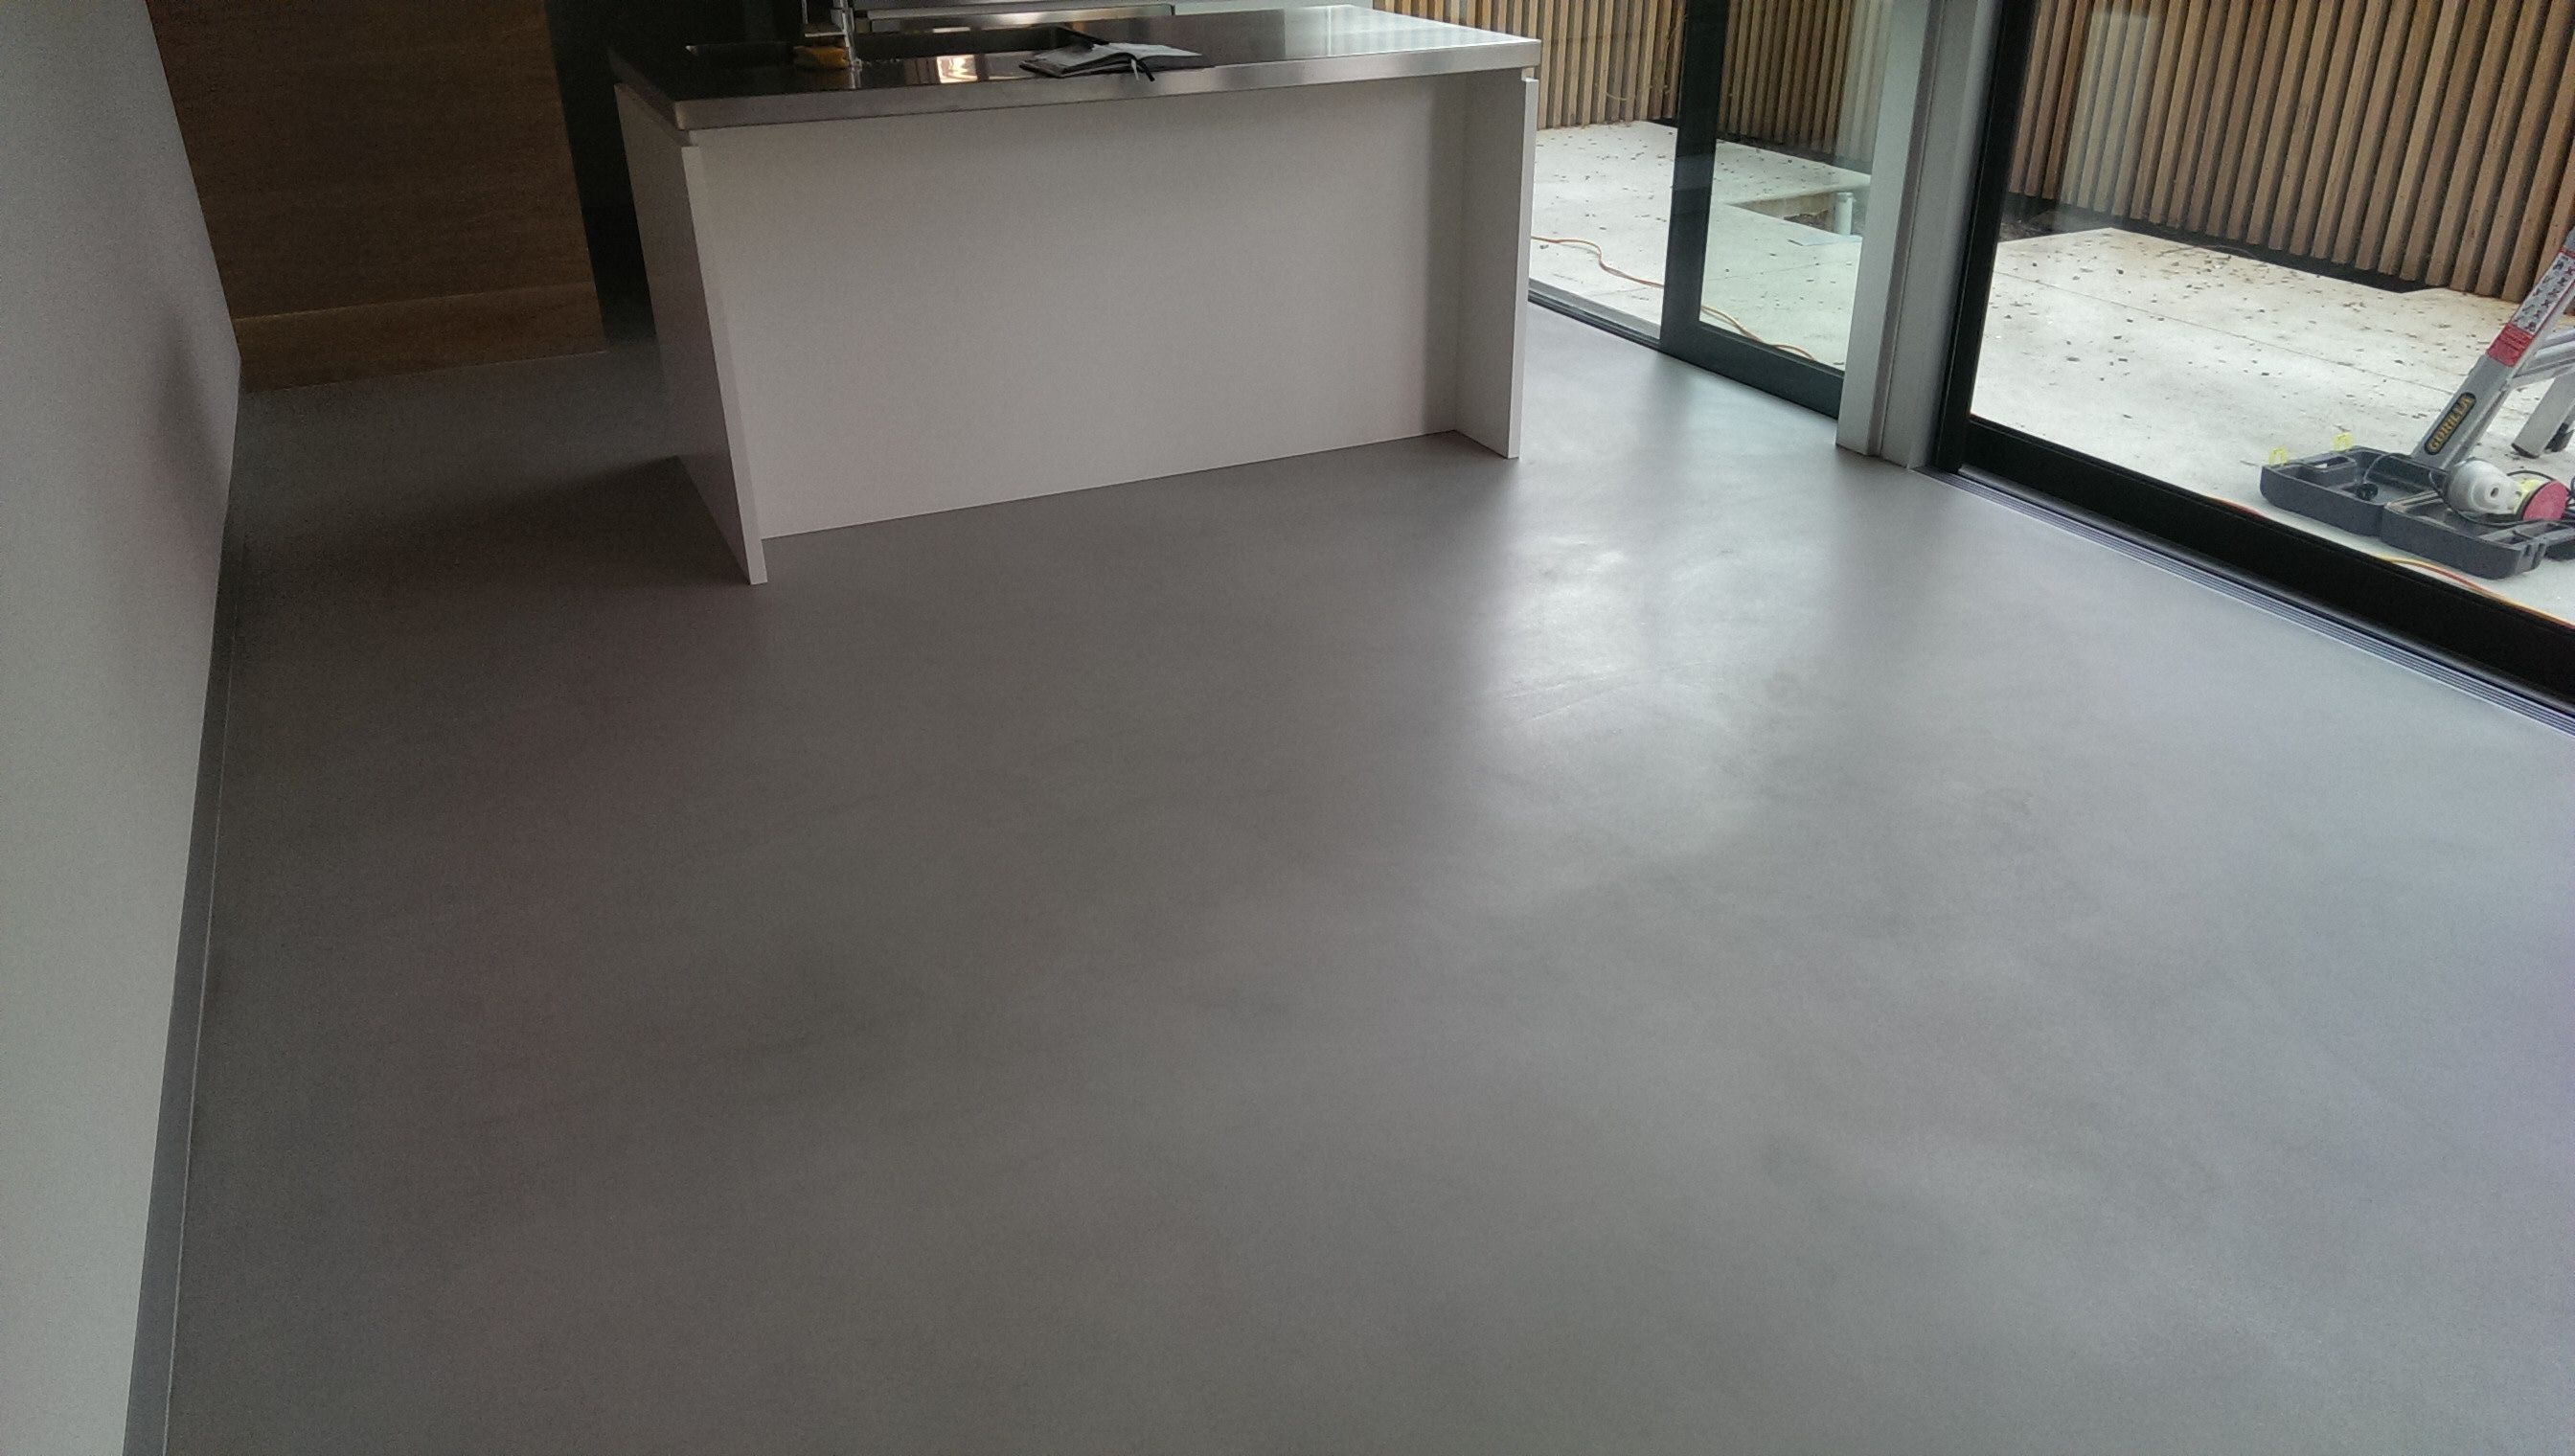 for work with to floors pictures concrete how best stain wikihow step shoes